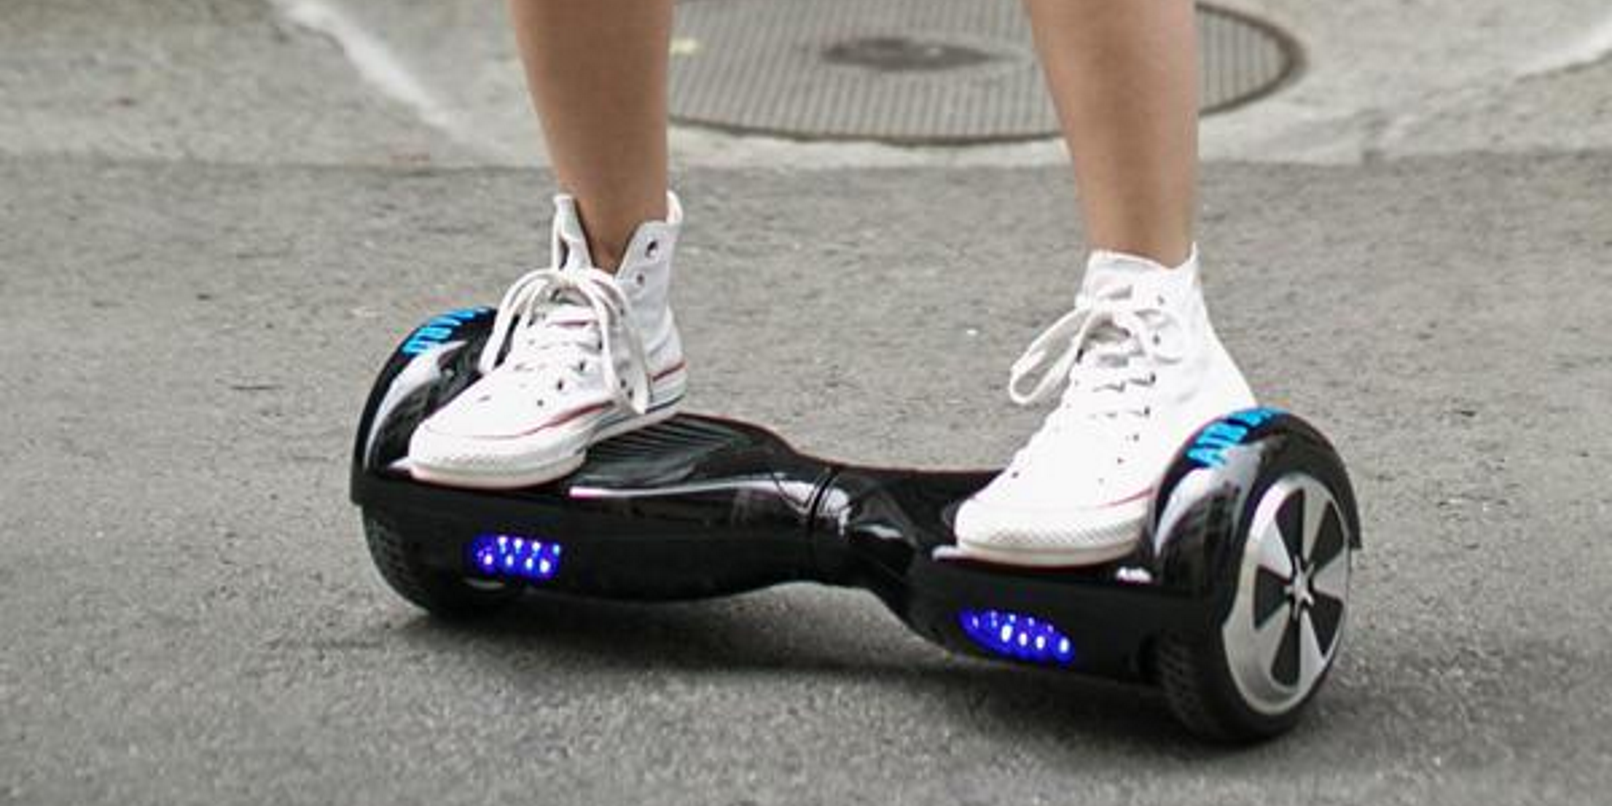 London police say that no matter how cool you look riding a hoverboard, it's still illegal